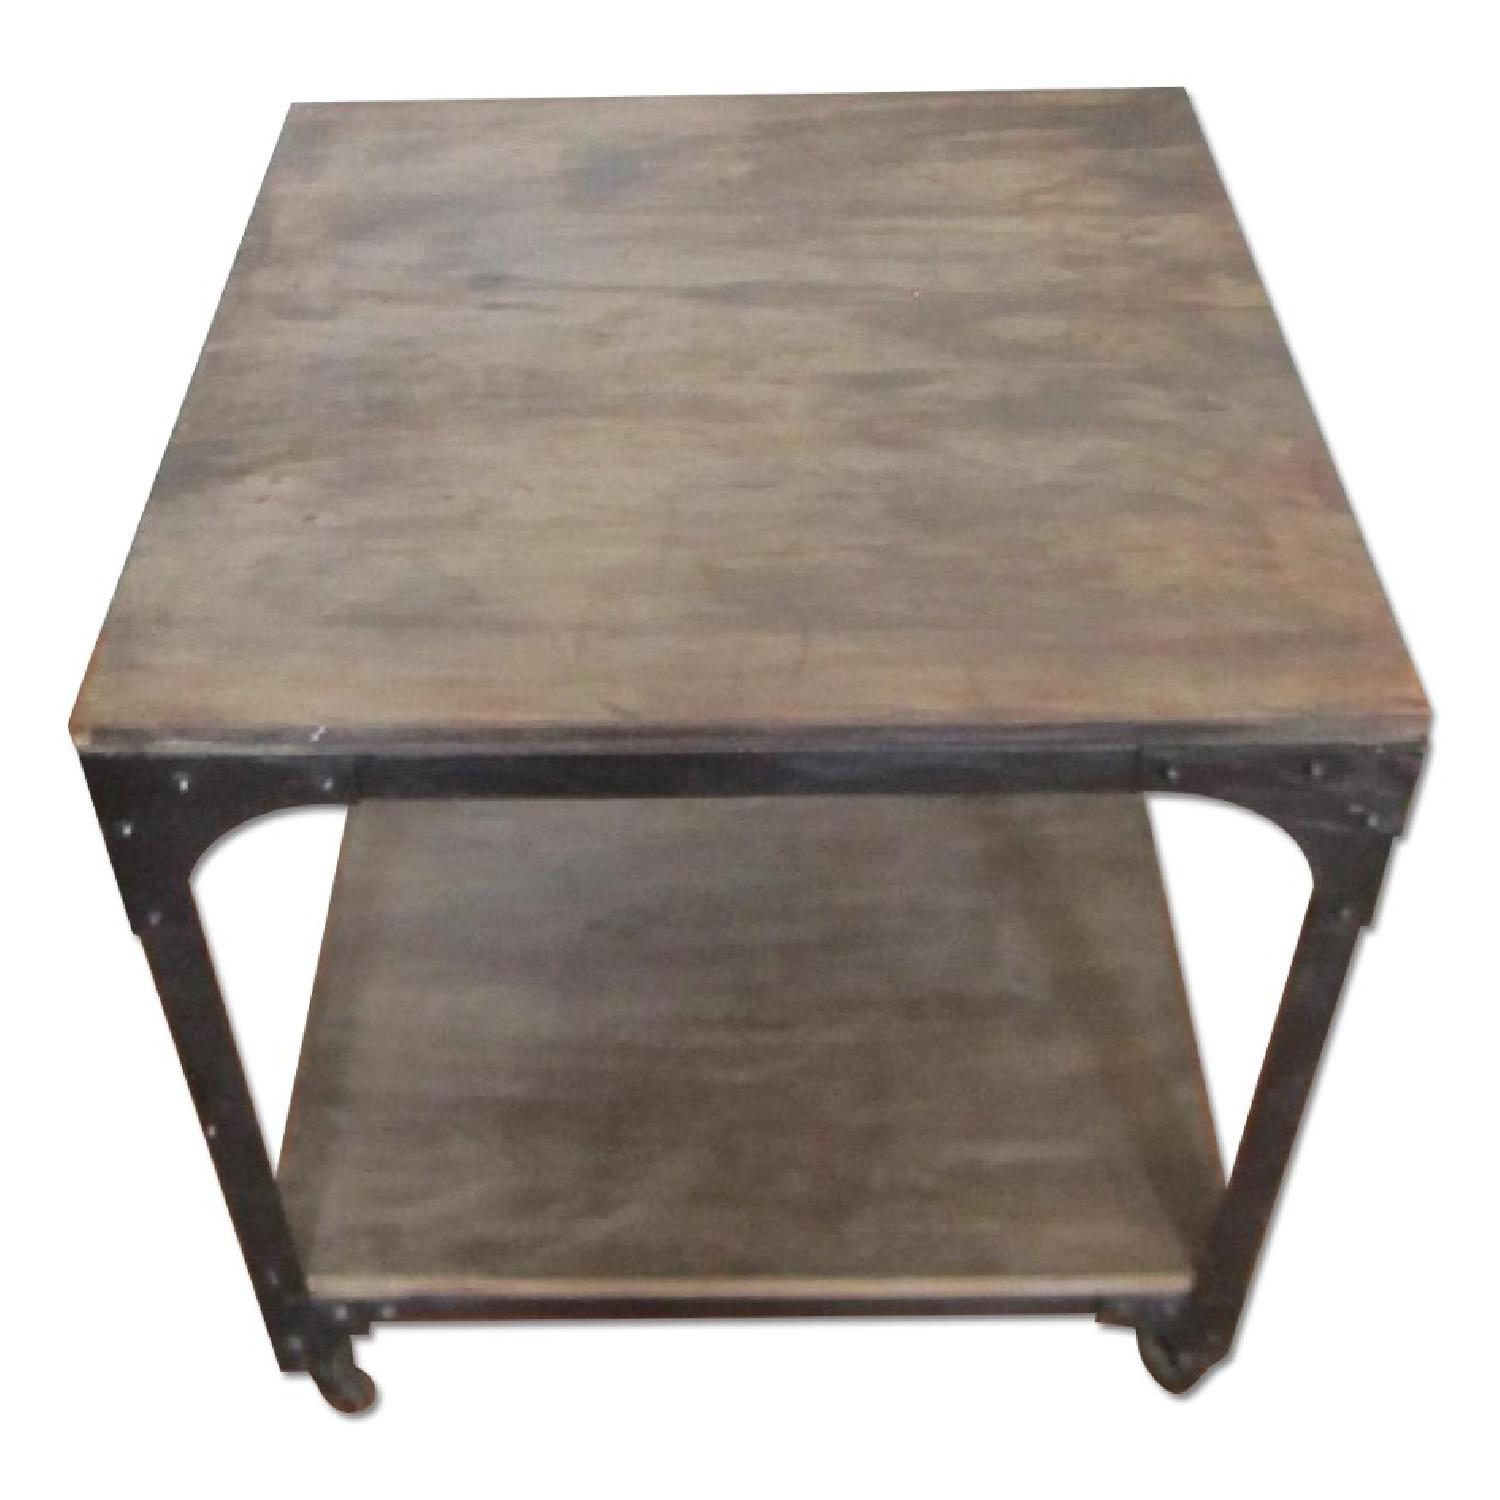 Anthropologie Decker Cube Side Tables/Consoles - image-0